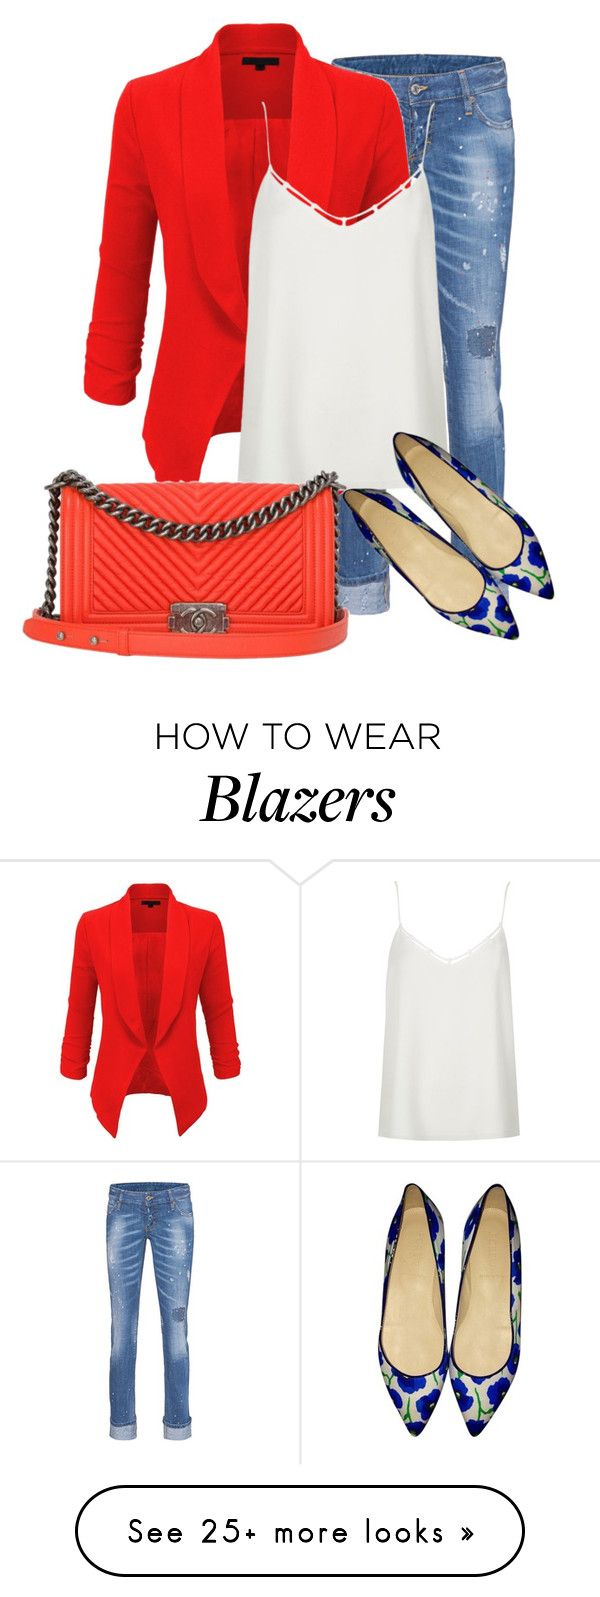 """""""red blazer"""" by jana-zed on Polyvore featuring Dsquared2, LE3NO, River Island, J.Crew, Chanel, jcrew and dsquared"""